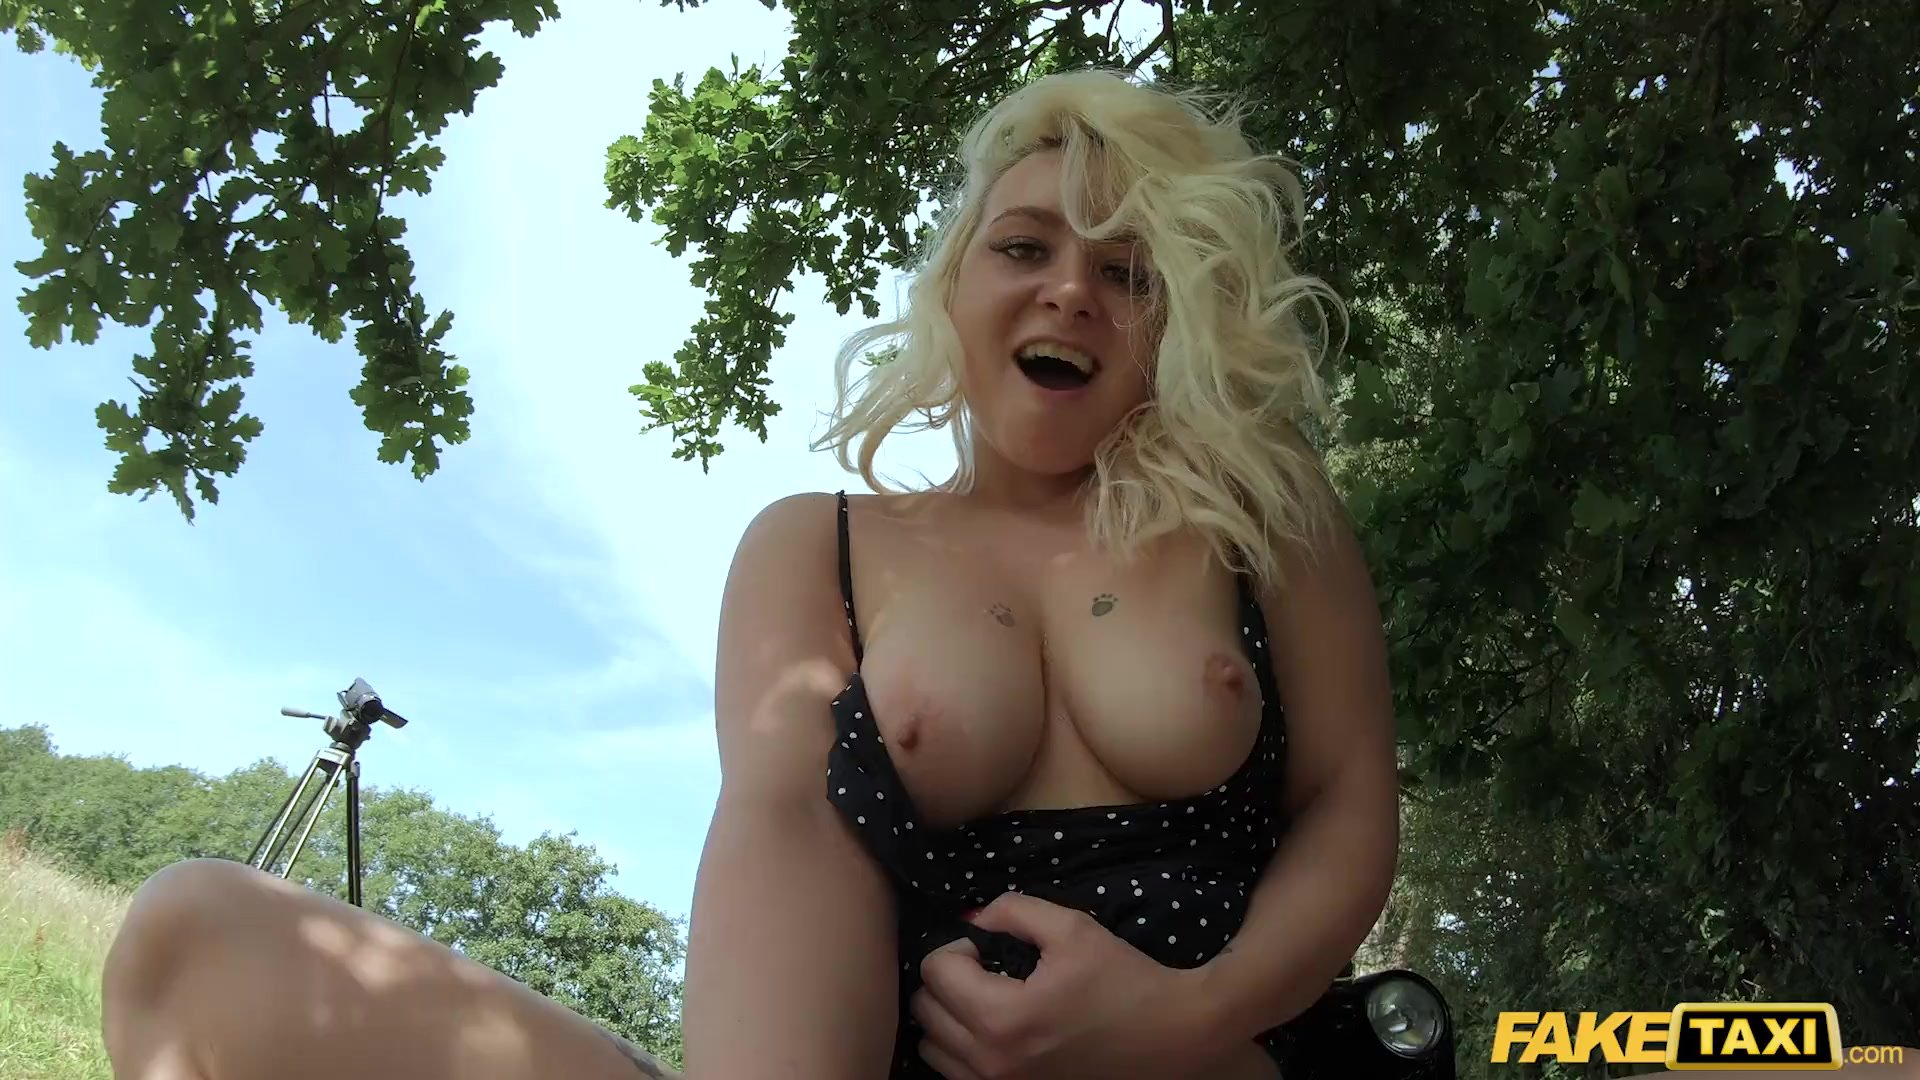 Fake Taxi British blonde Candy Banks fucked by a taxi driver